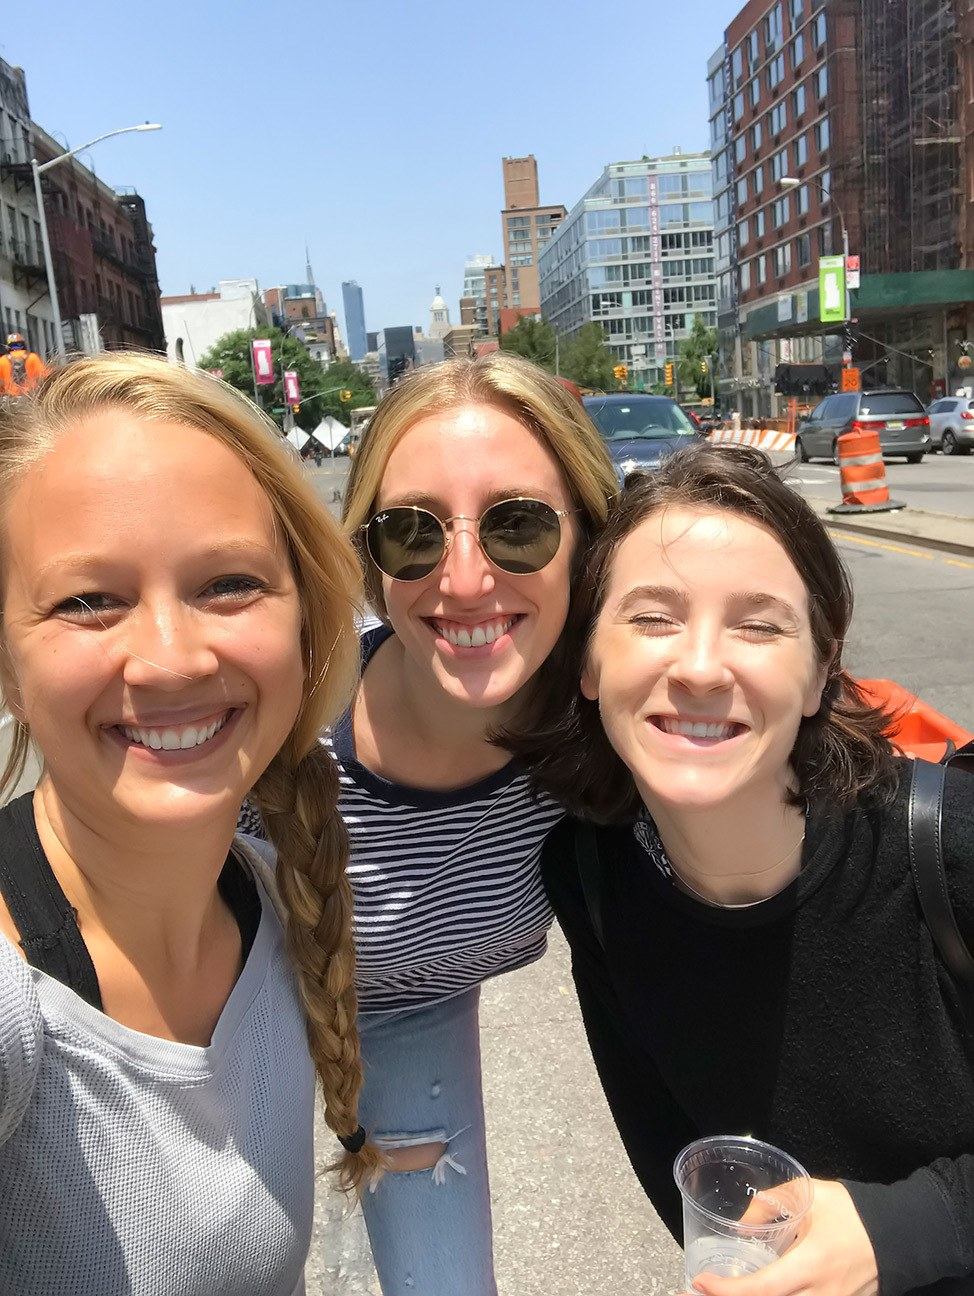 Friend time in NYC